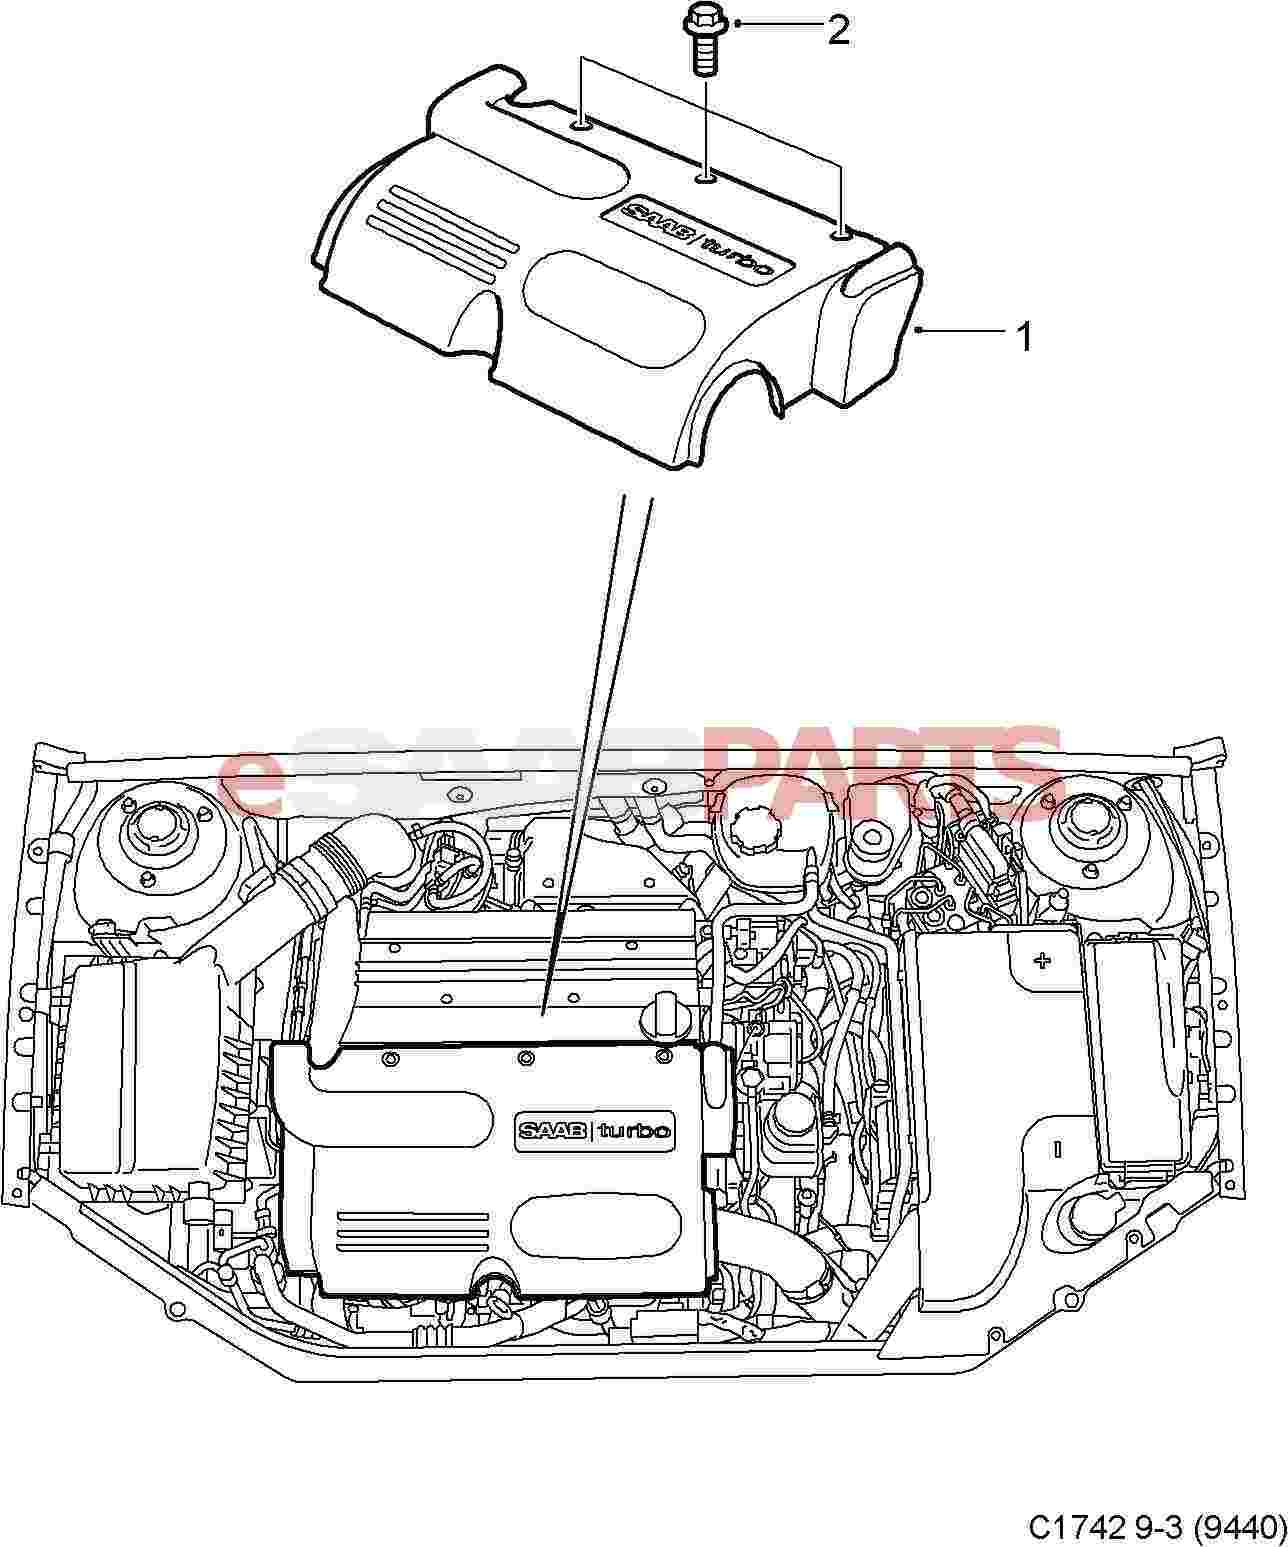 99 Saab 9 3 Fuse Diagram. Saab. Auto Fuse Box Diagram